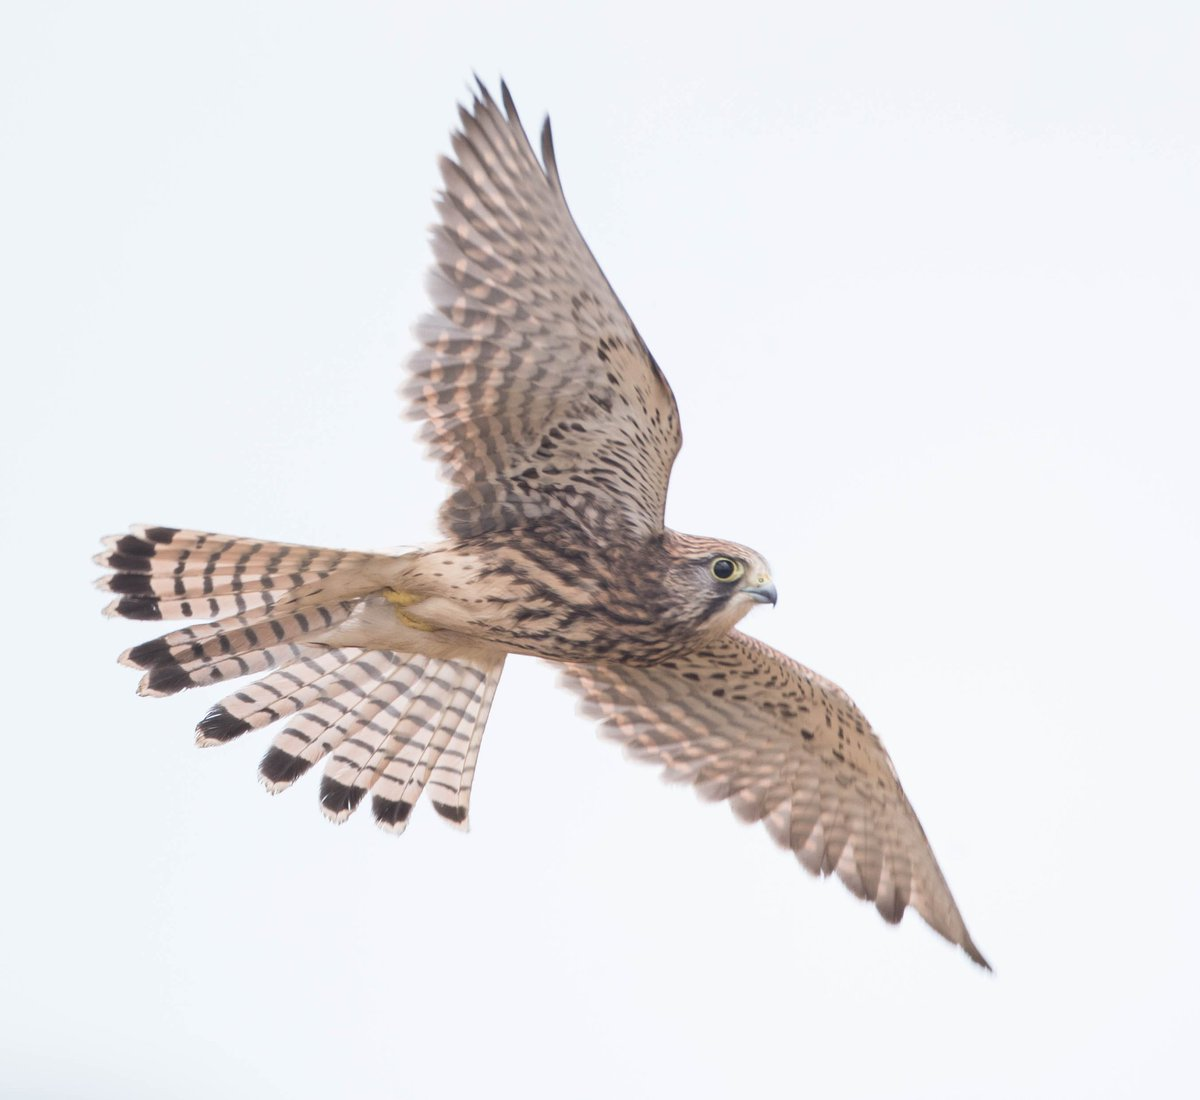 A juvenile kestrel doing the rounds at Gunners Park in Essex, UK #EarthCapture by @drumon25 https://t.co/LO5d9IAfUg